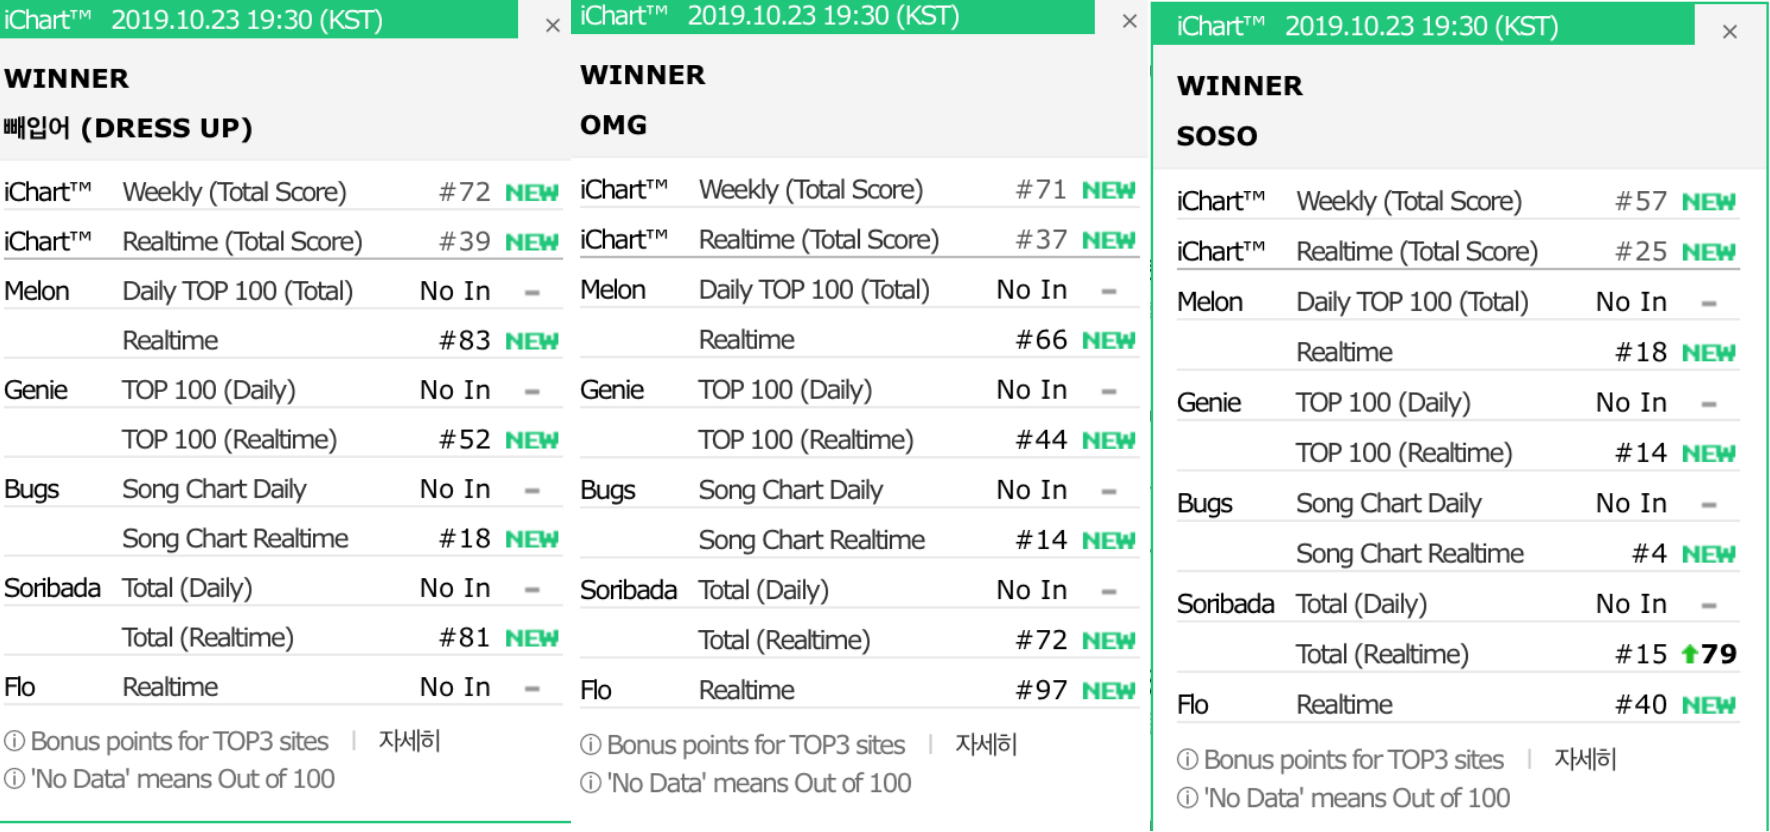 winner_cross_ichart